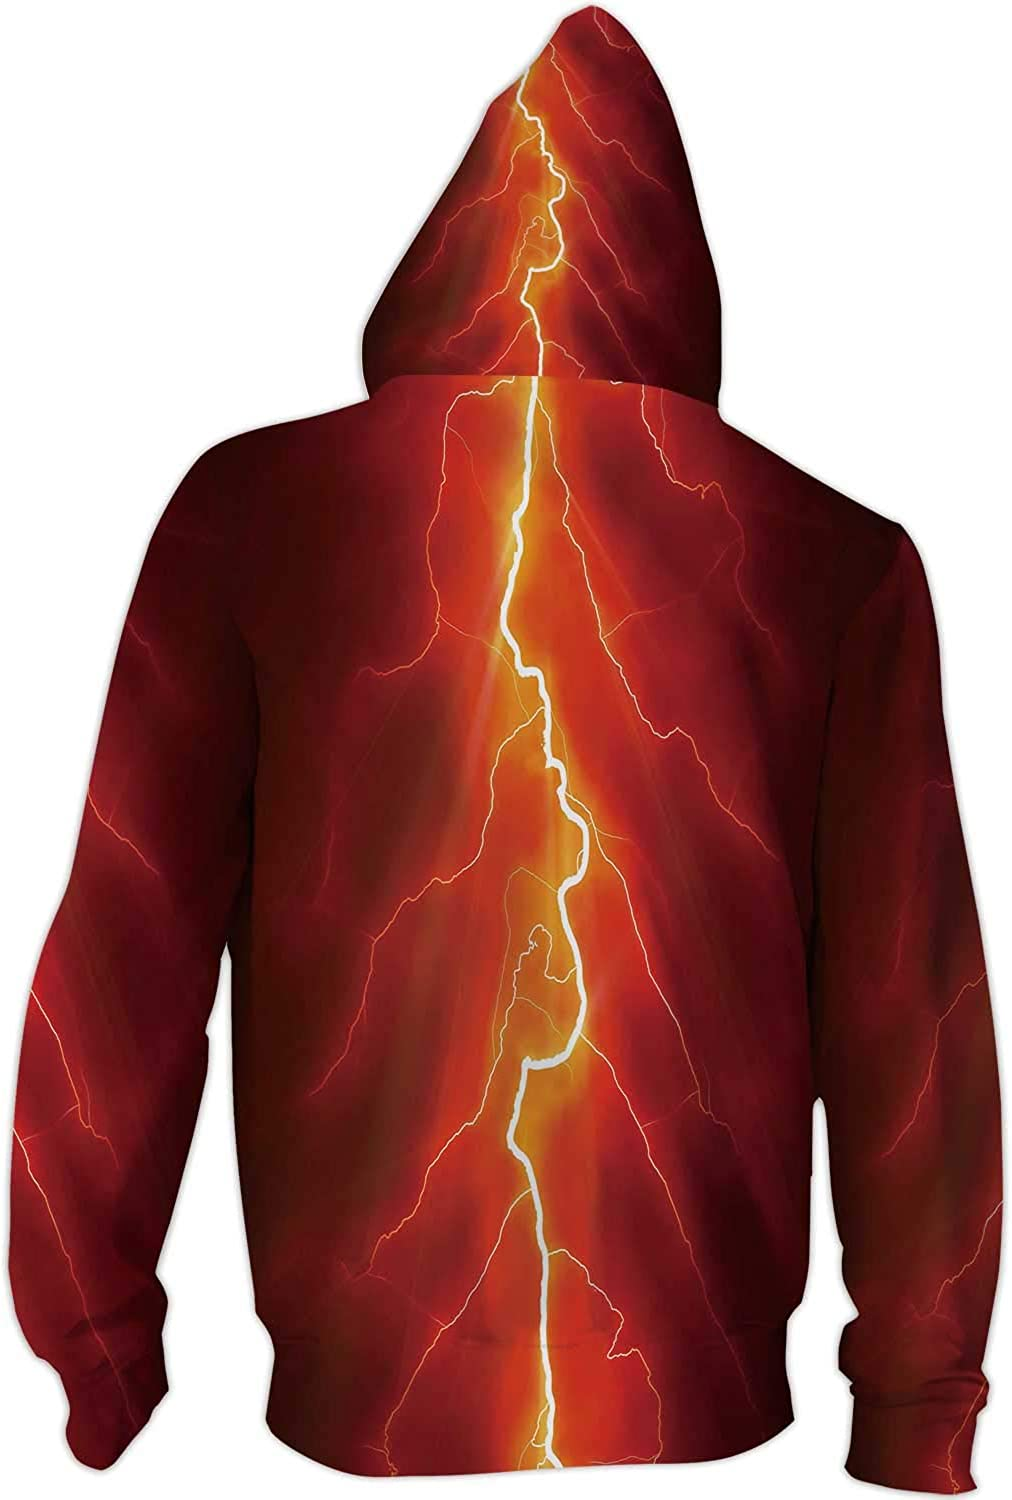 C COABALLA Architectural Abstract Sketch Sketch,Ladies Full Zip Fleece with Pocket Abstract S